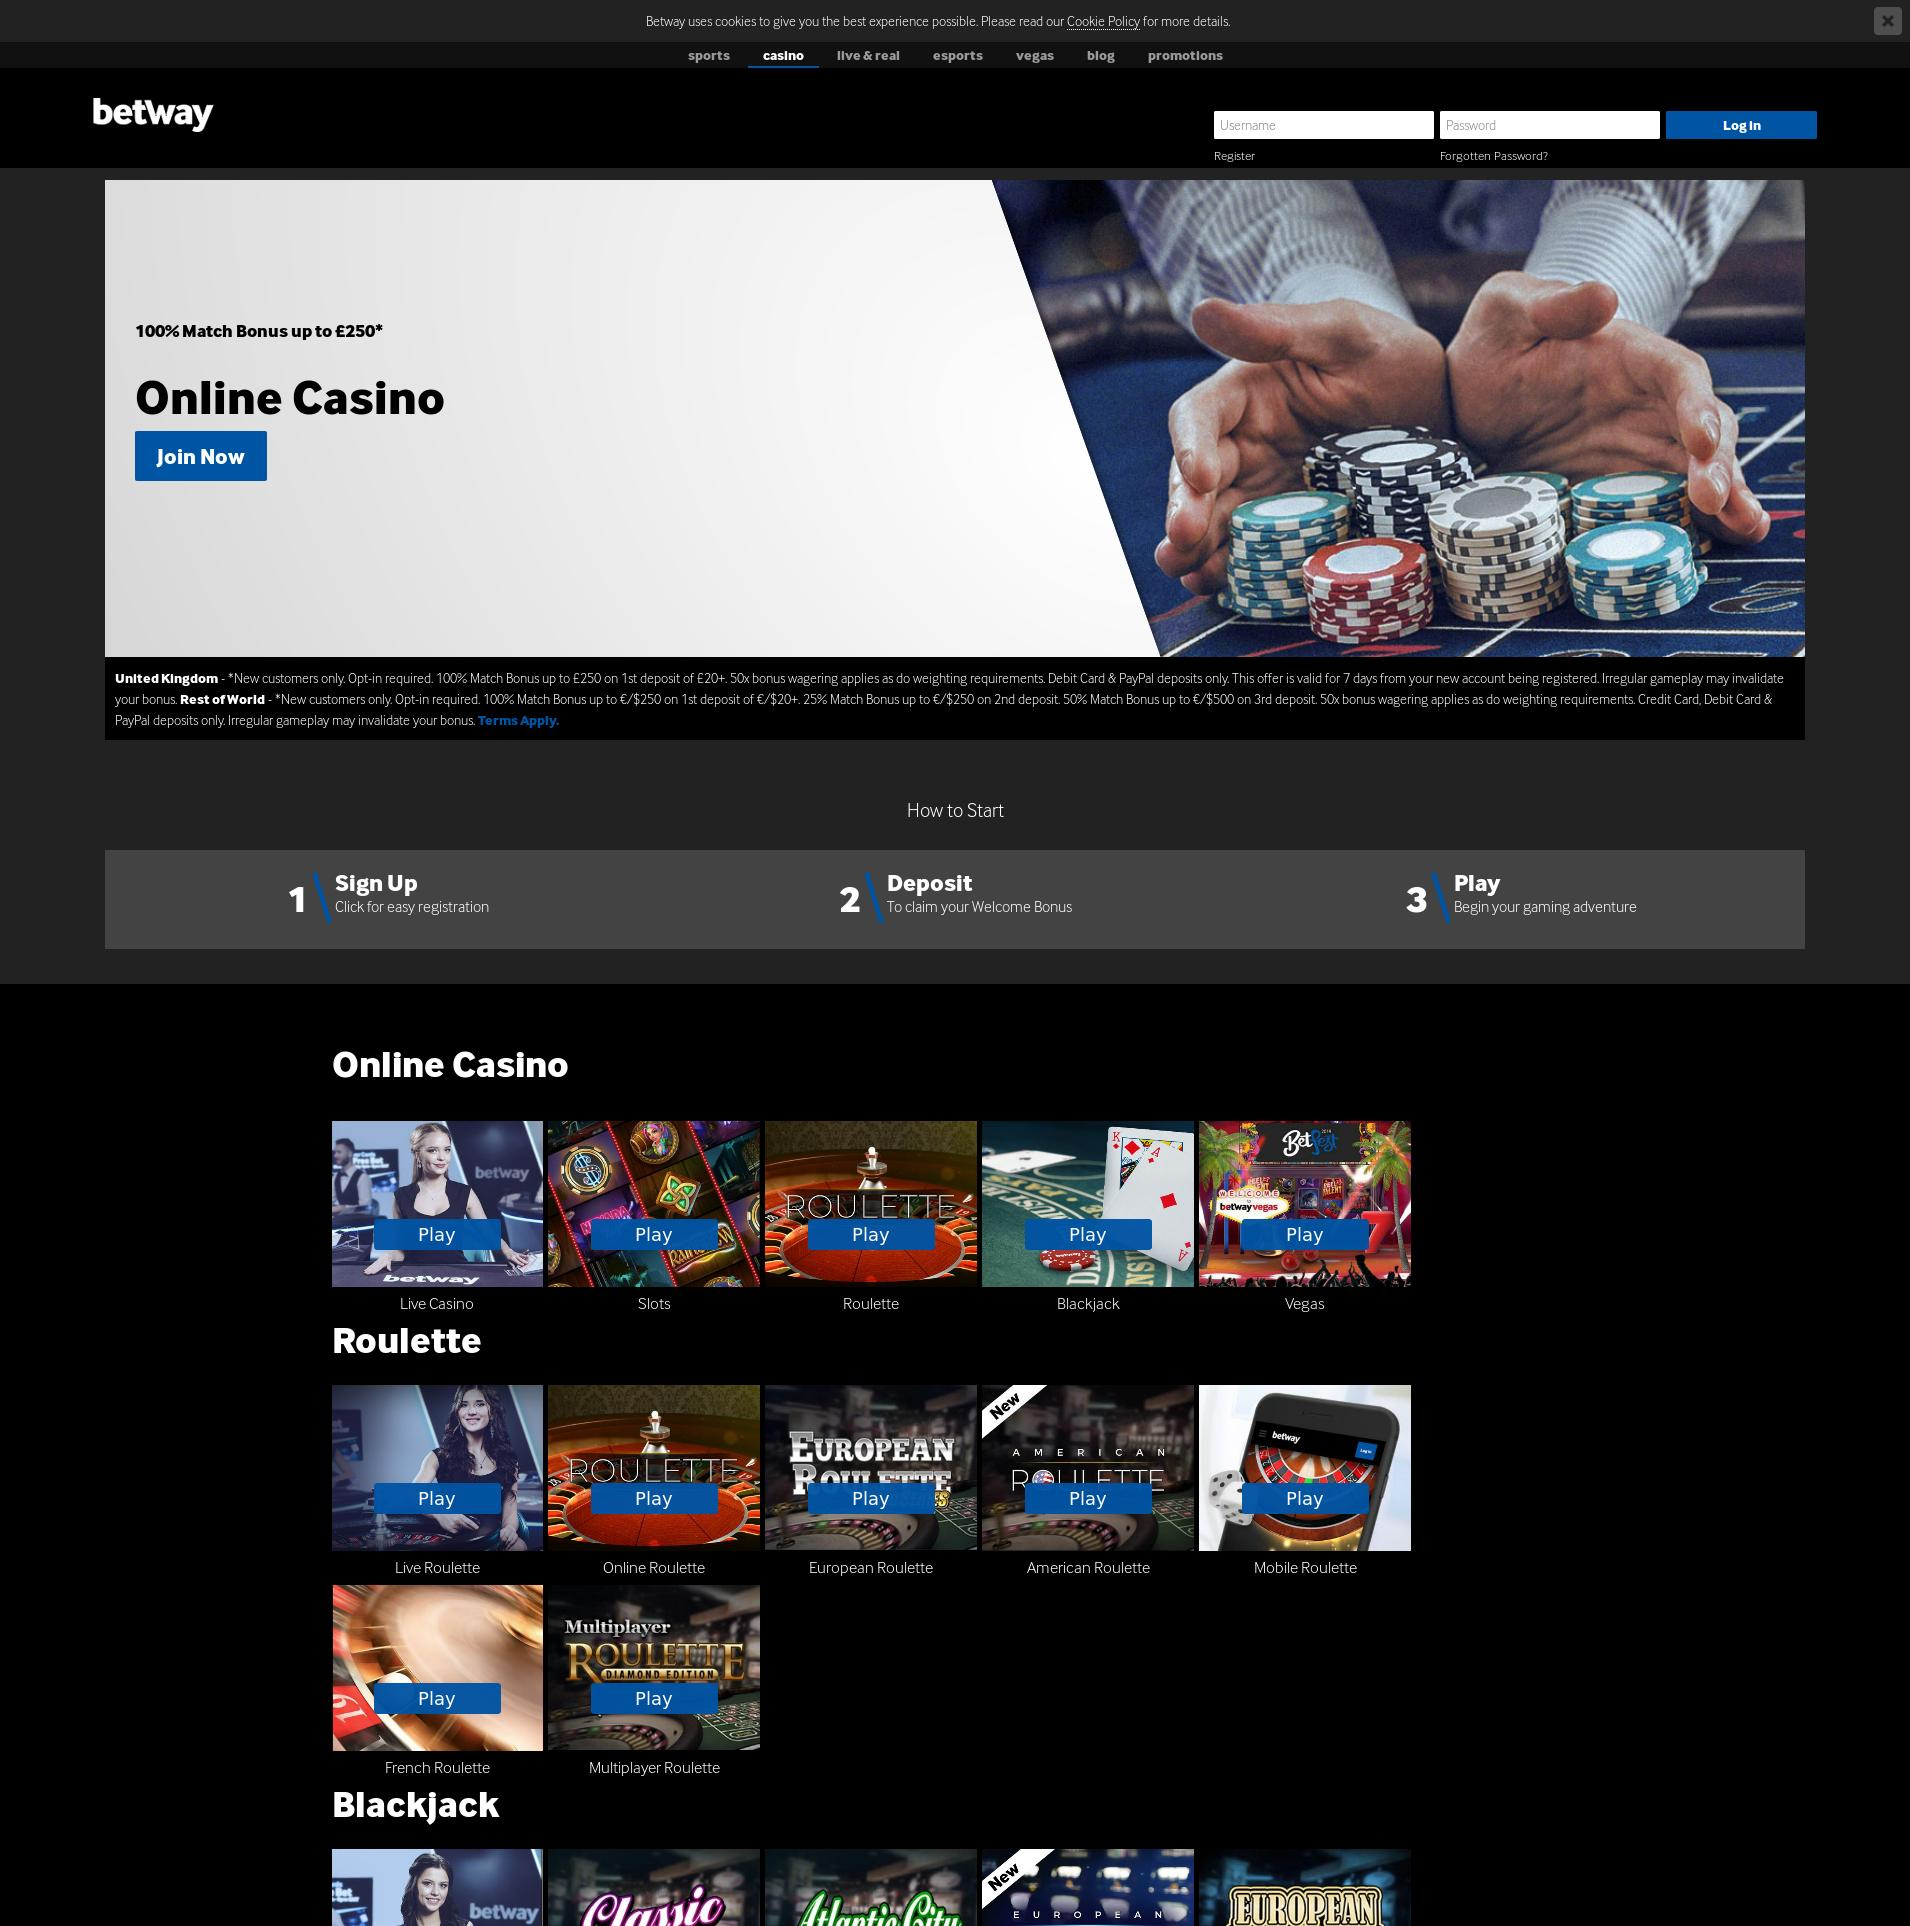 Betway Group Casinos